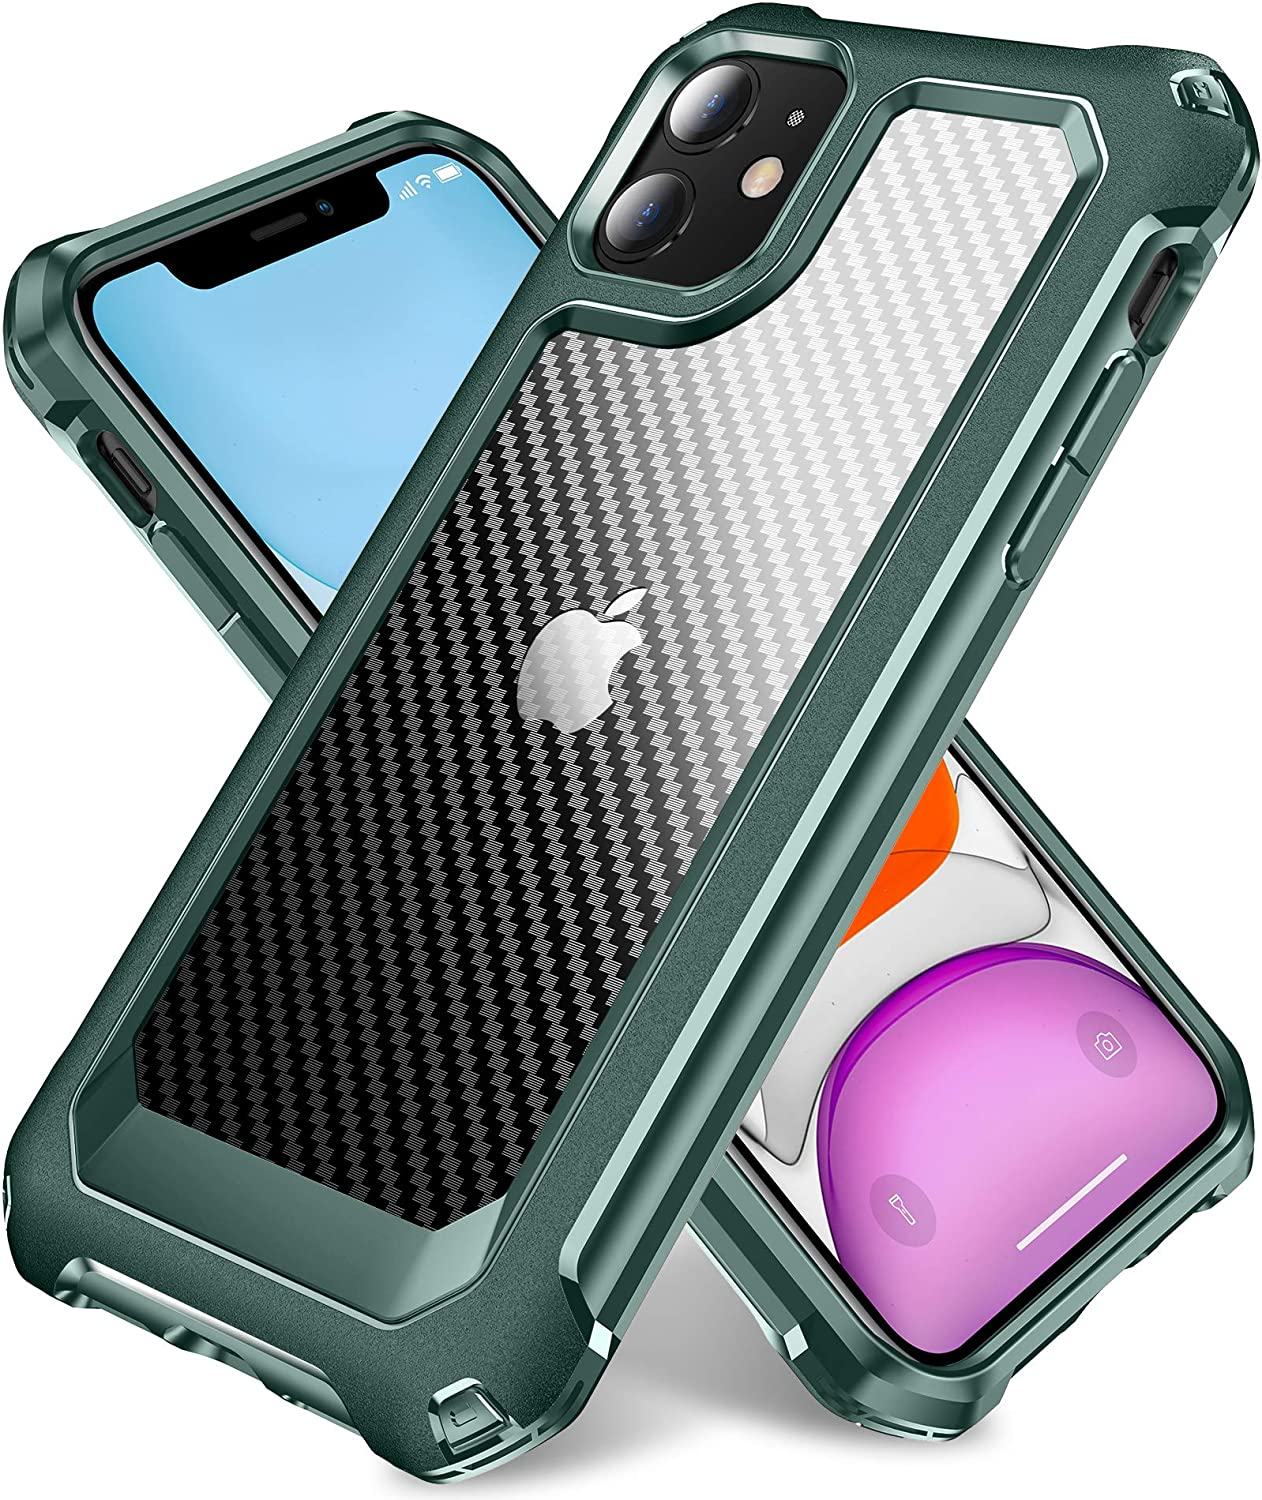 iPhone 11 Case, SUPBEC Slim Carbon Fiber Shockproof Protective Cover with Screen Protector [x2] [Military Grade Drop Protection] [Anti Scratch & Fingerprint], Phone Cases for iPhone 11, 6.1